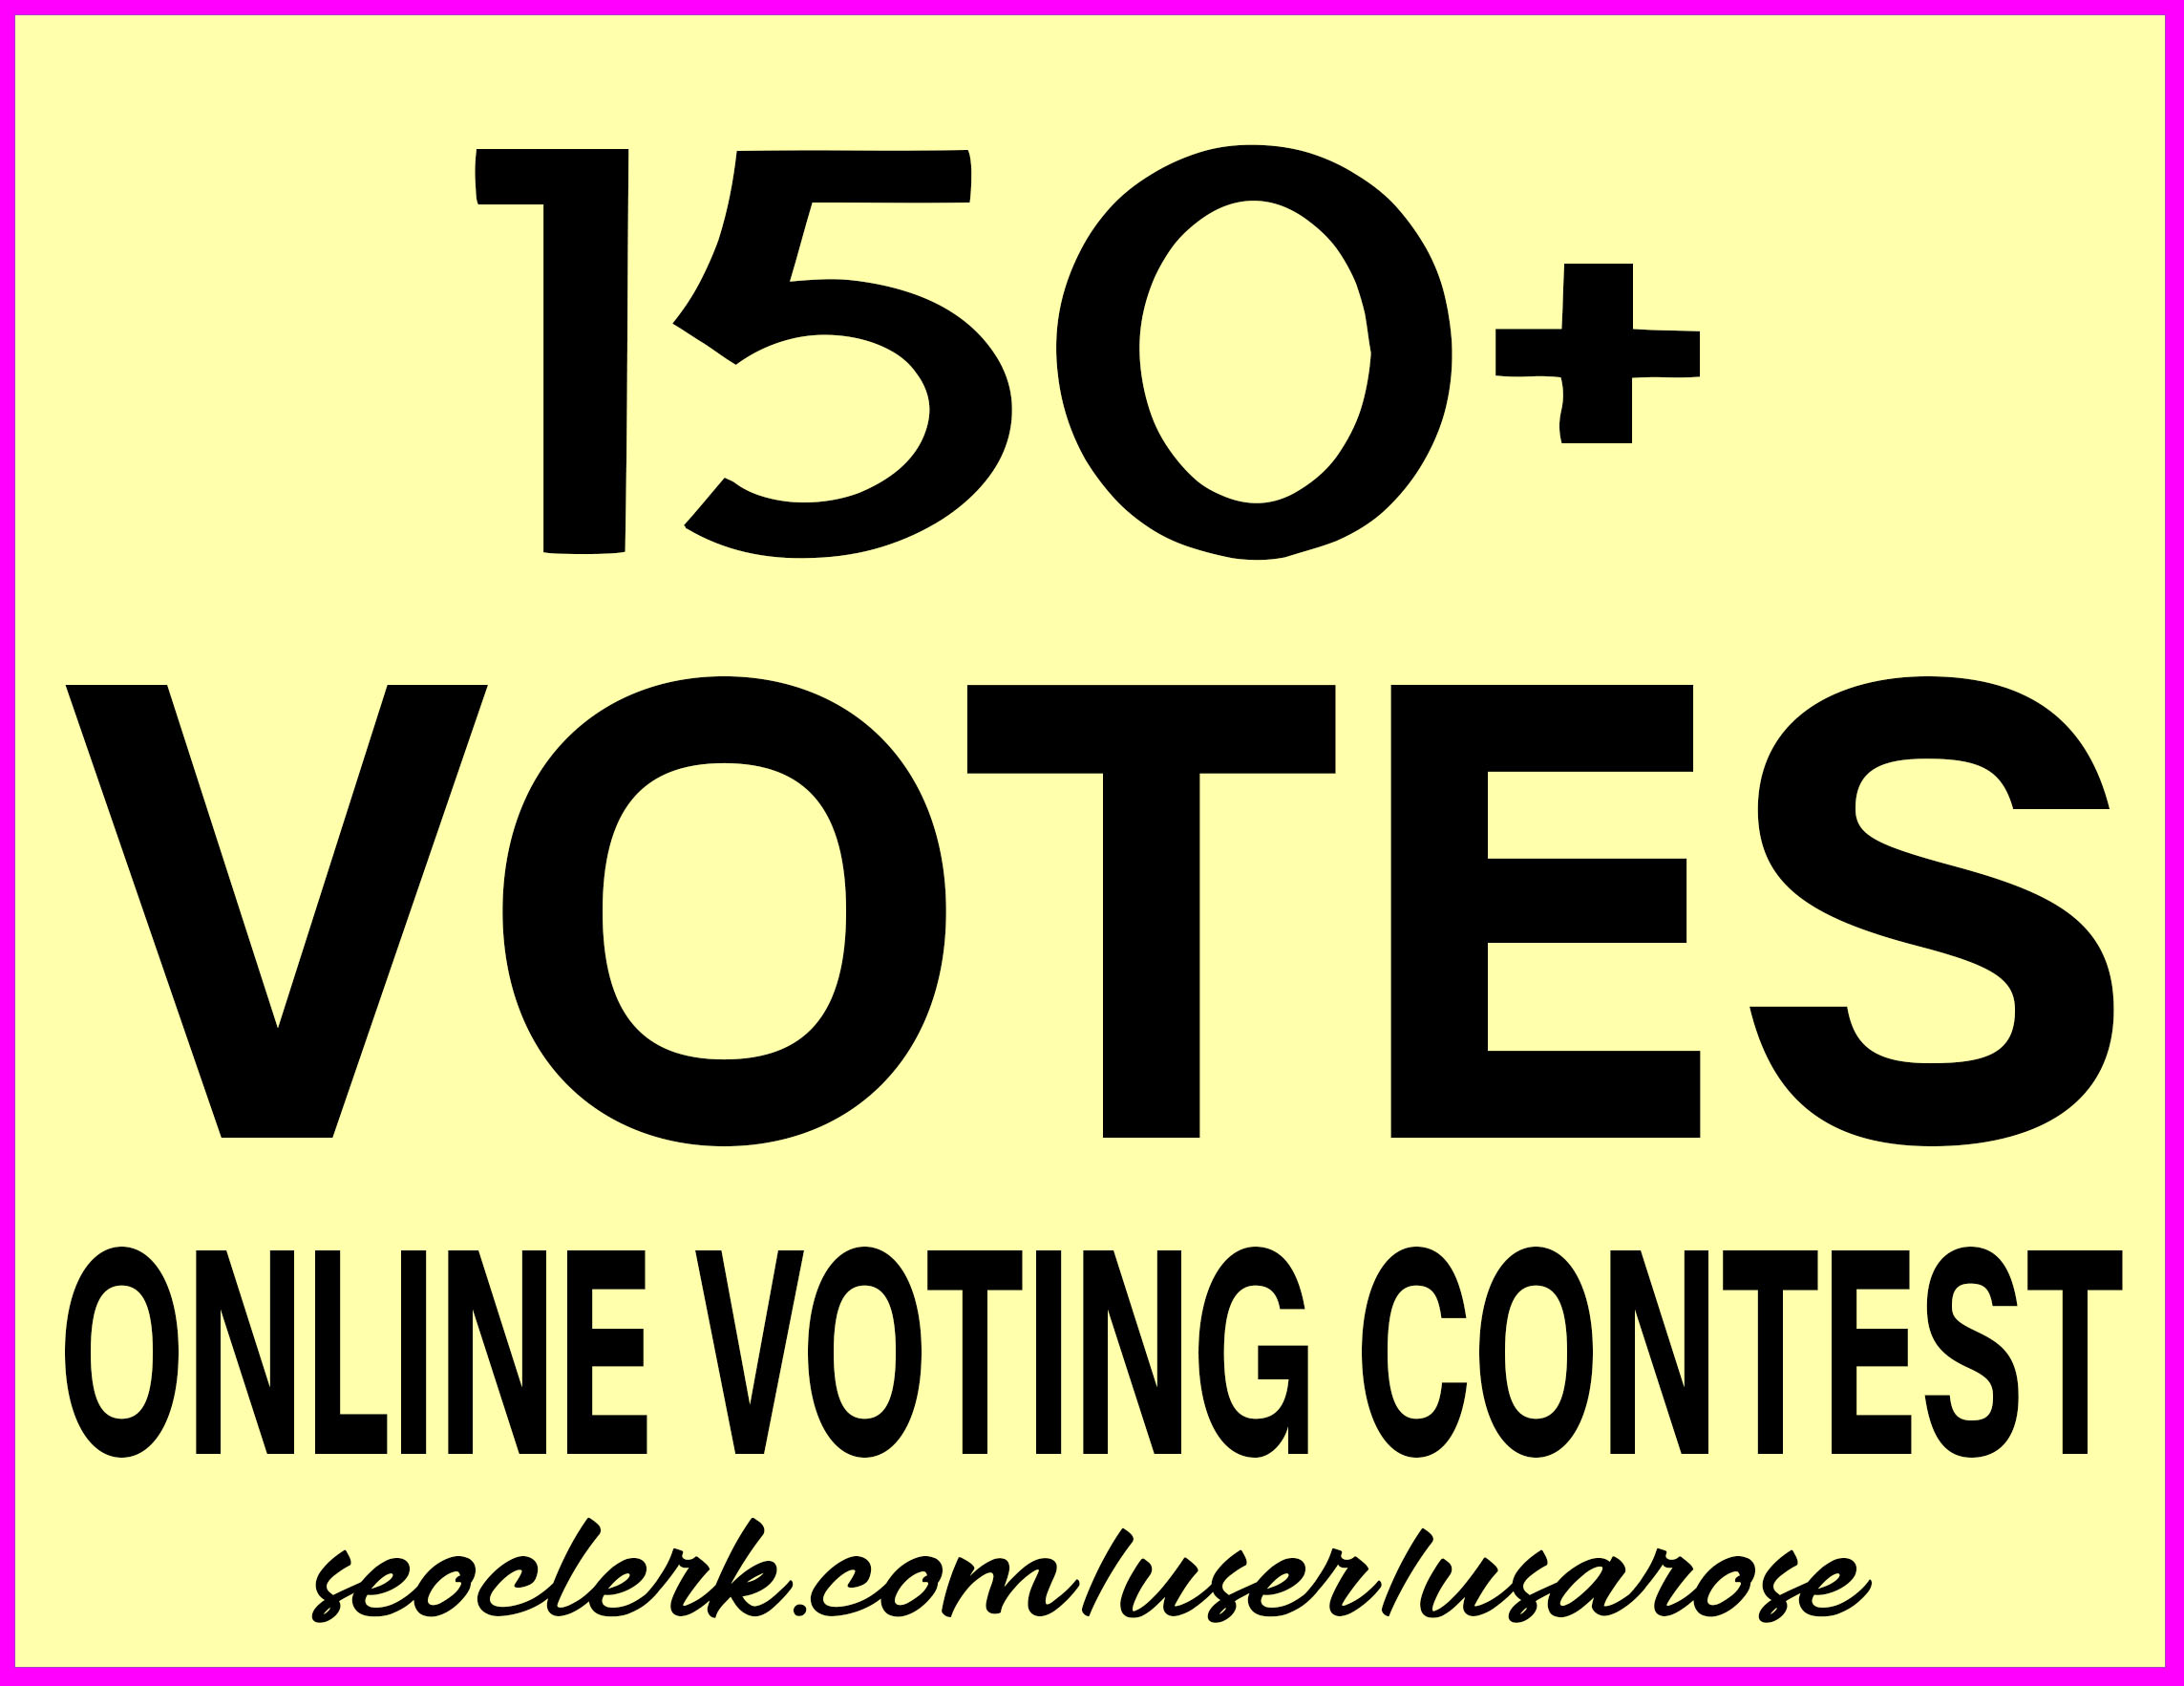 Give 150+ Votes For Online Voting Contest - Instant Start